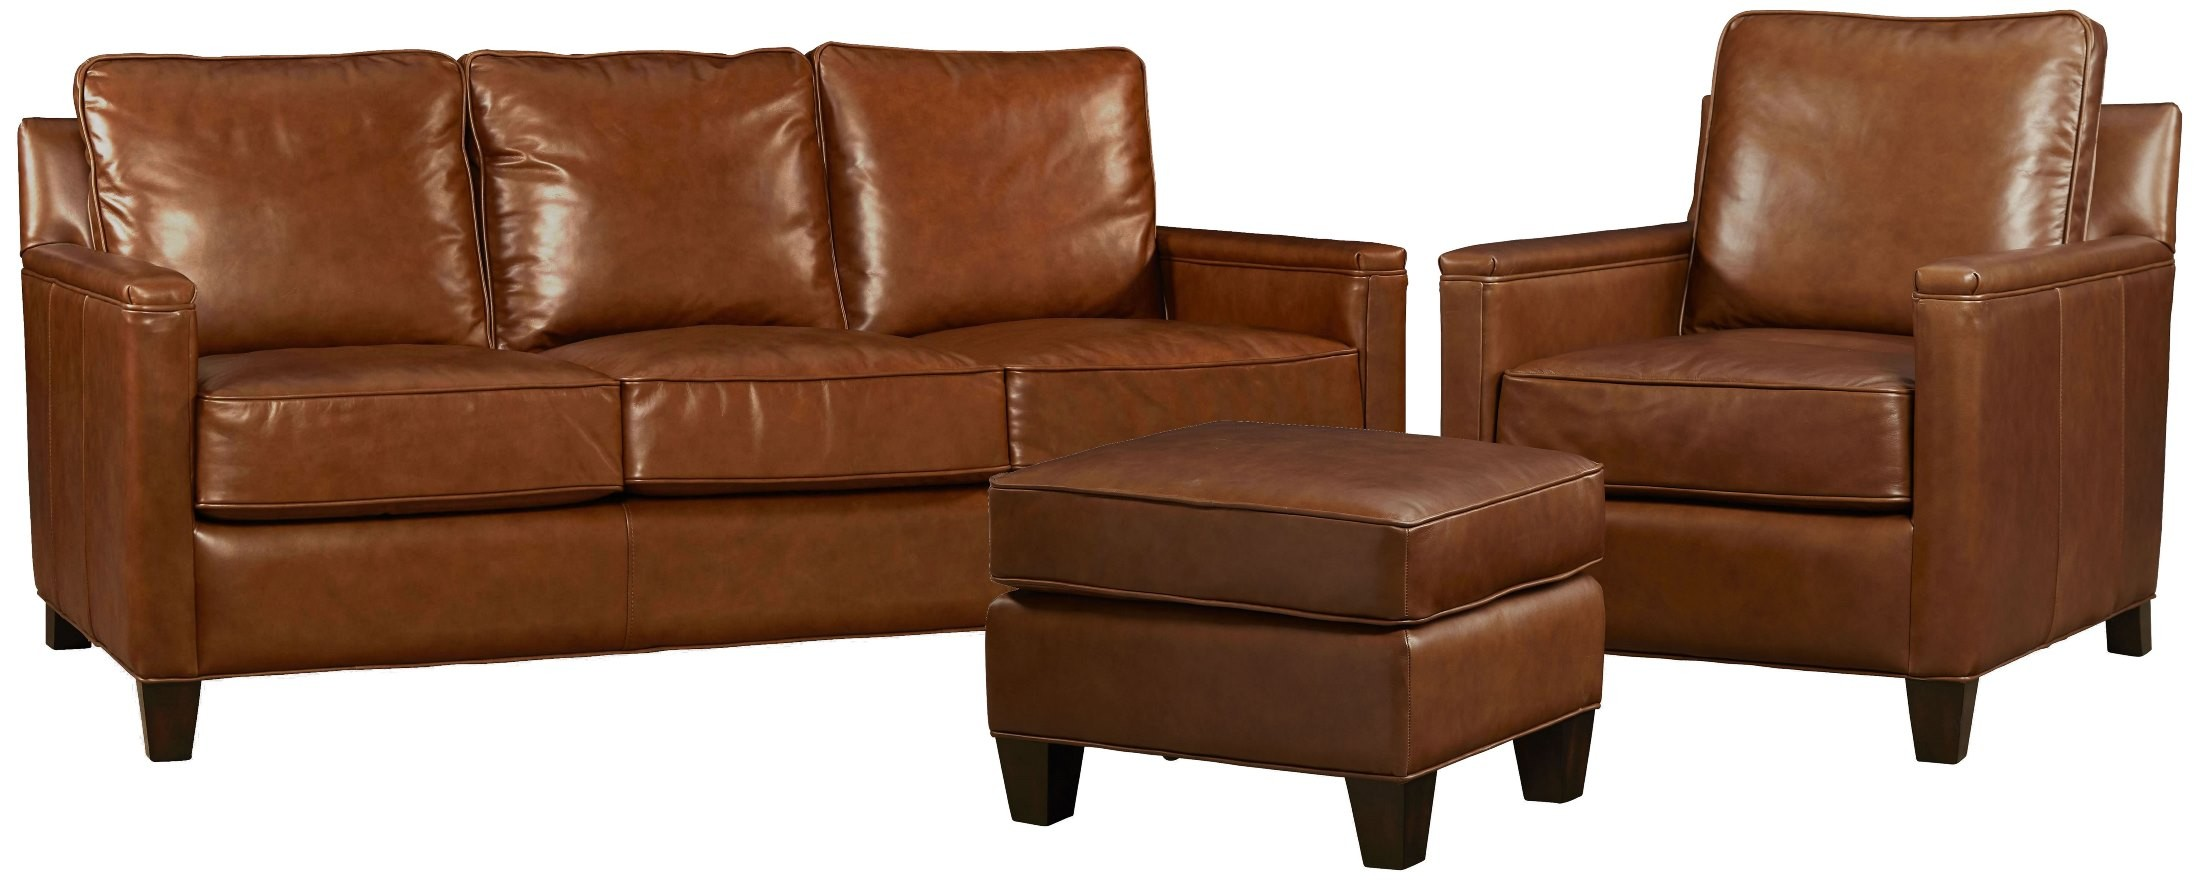 Alexander Berkshire Maple Living Room Set 152101 BM